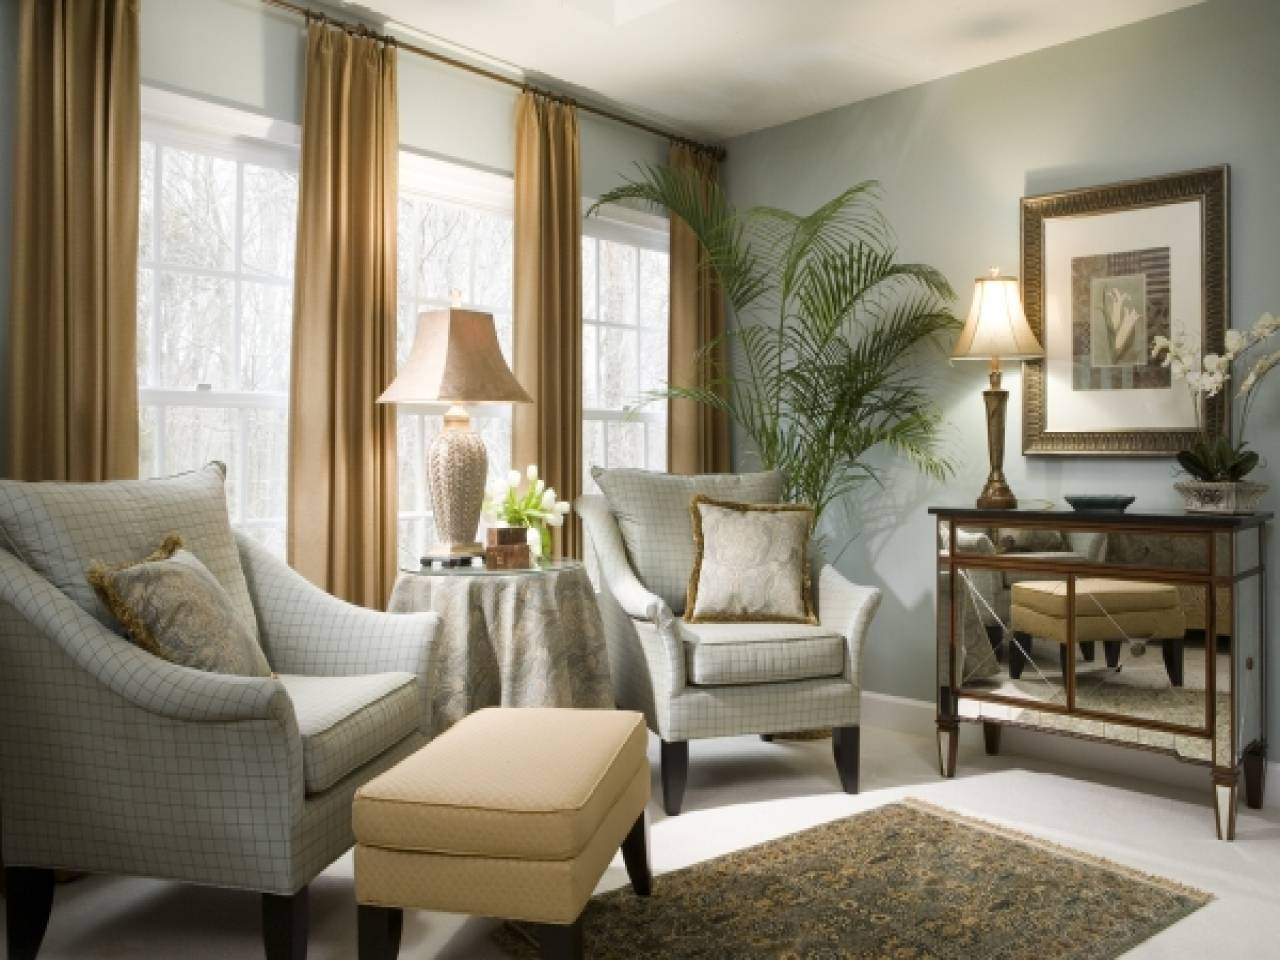 Master Bedroom Sitting Room Decorating Ideas House Plans 150389